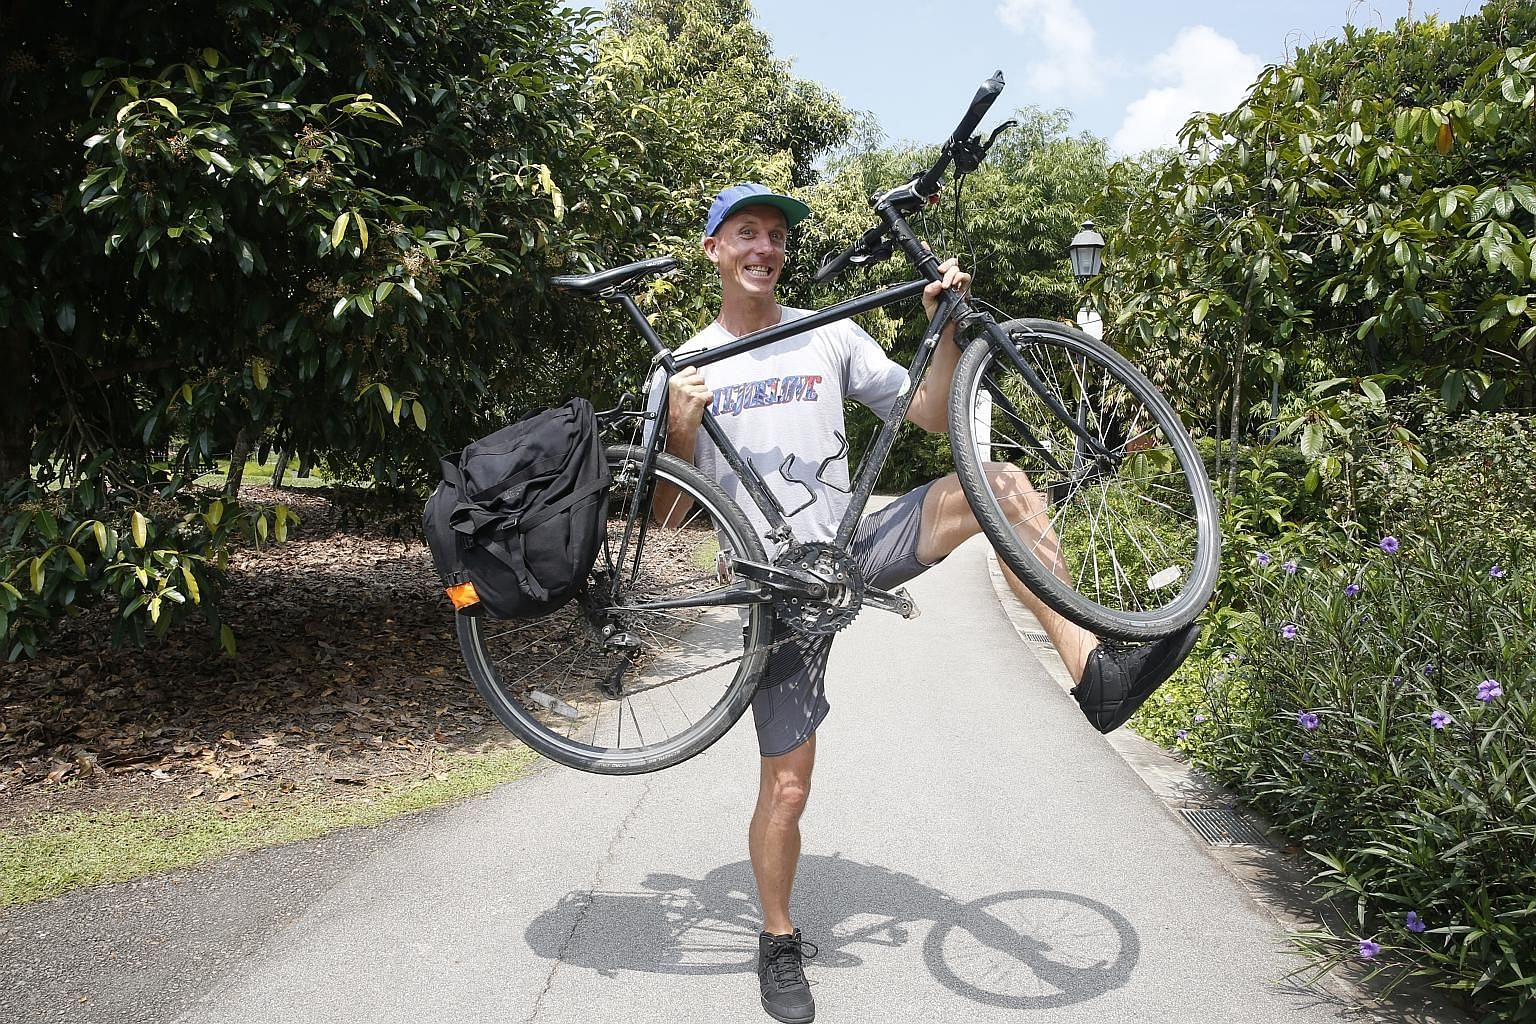 Mr Markus Pukonen has travelled halfway round the world from Toronto, Canada, using basically just muscle power - by walking, cycling, paddling along the Mekong River and hopping for 10km on a pogo stick, and he has not even taken the escalator - sin